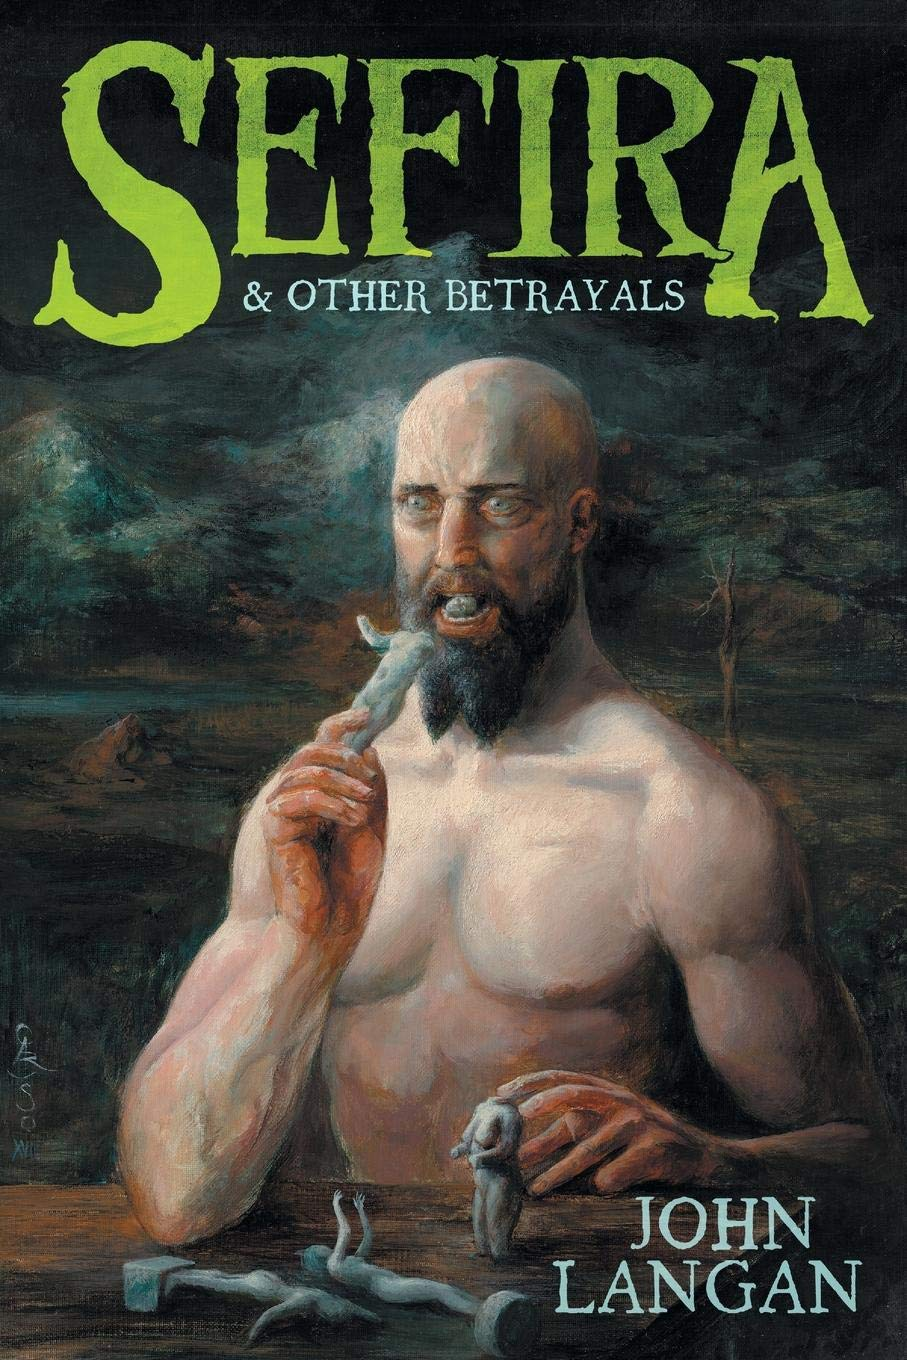 Sefira and Other Betrayals_John Langan.jpg